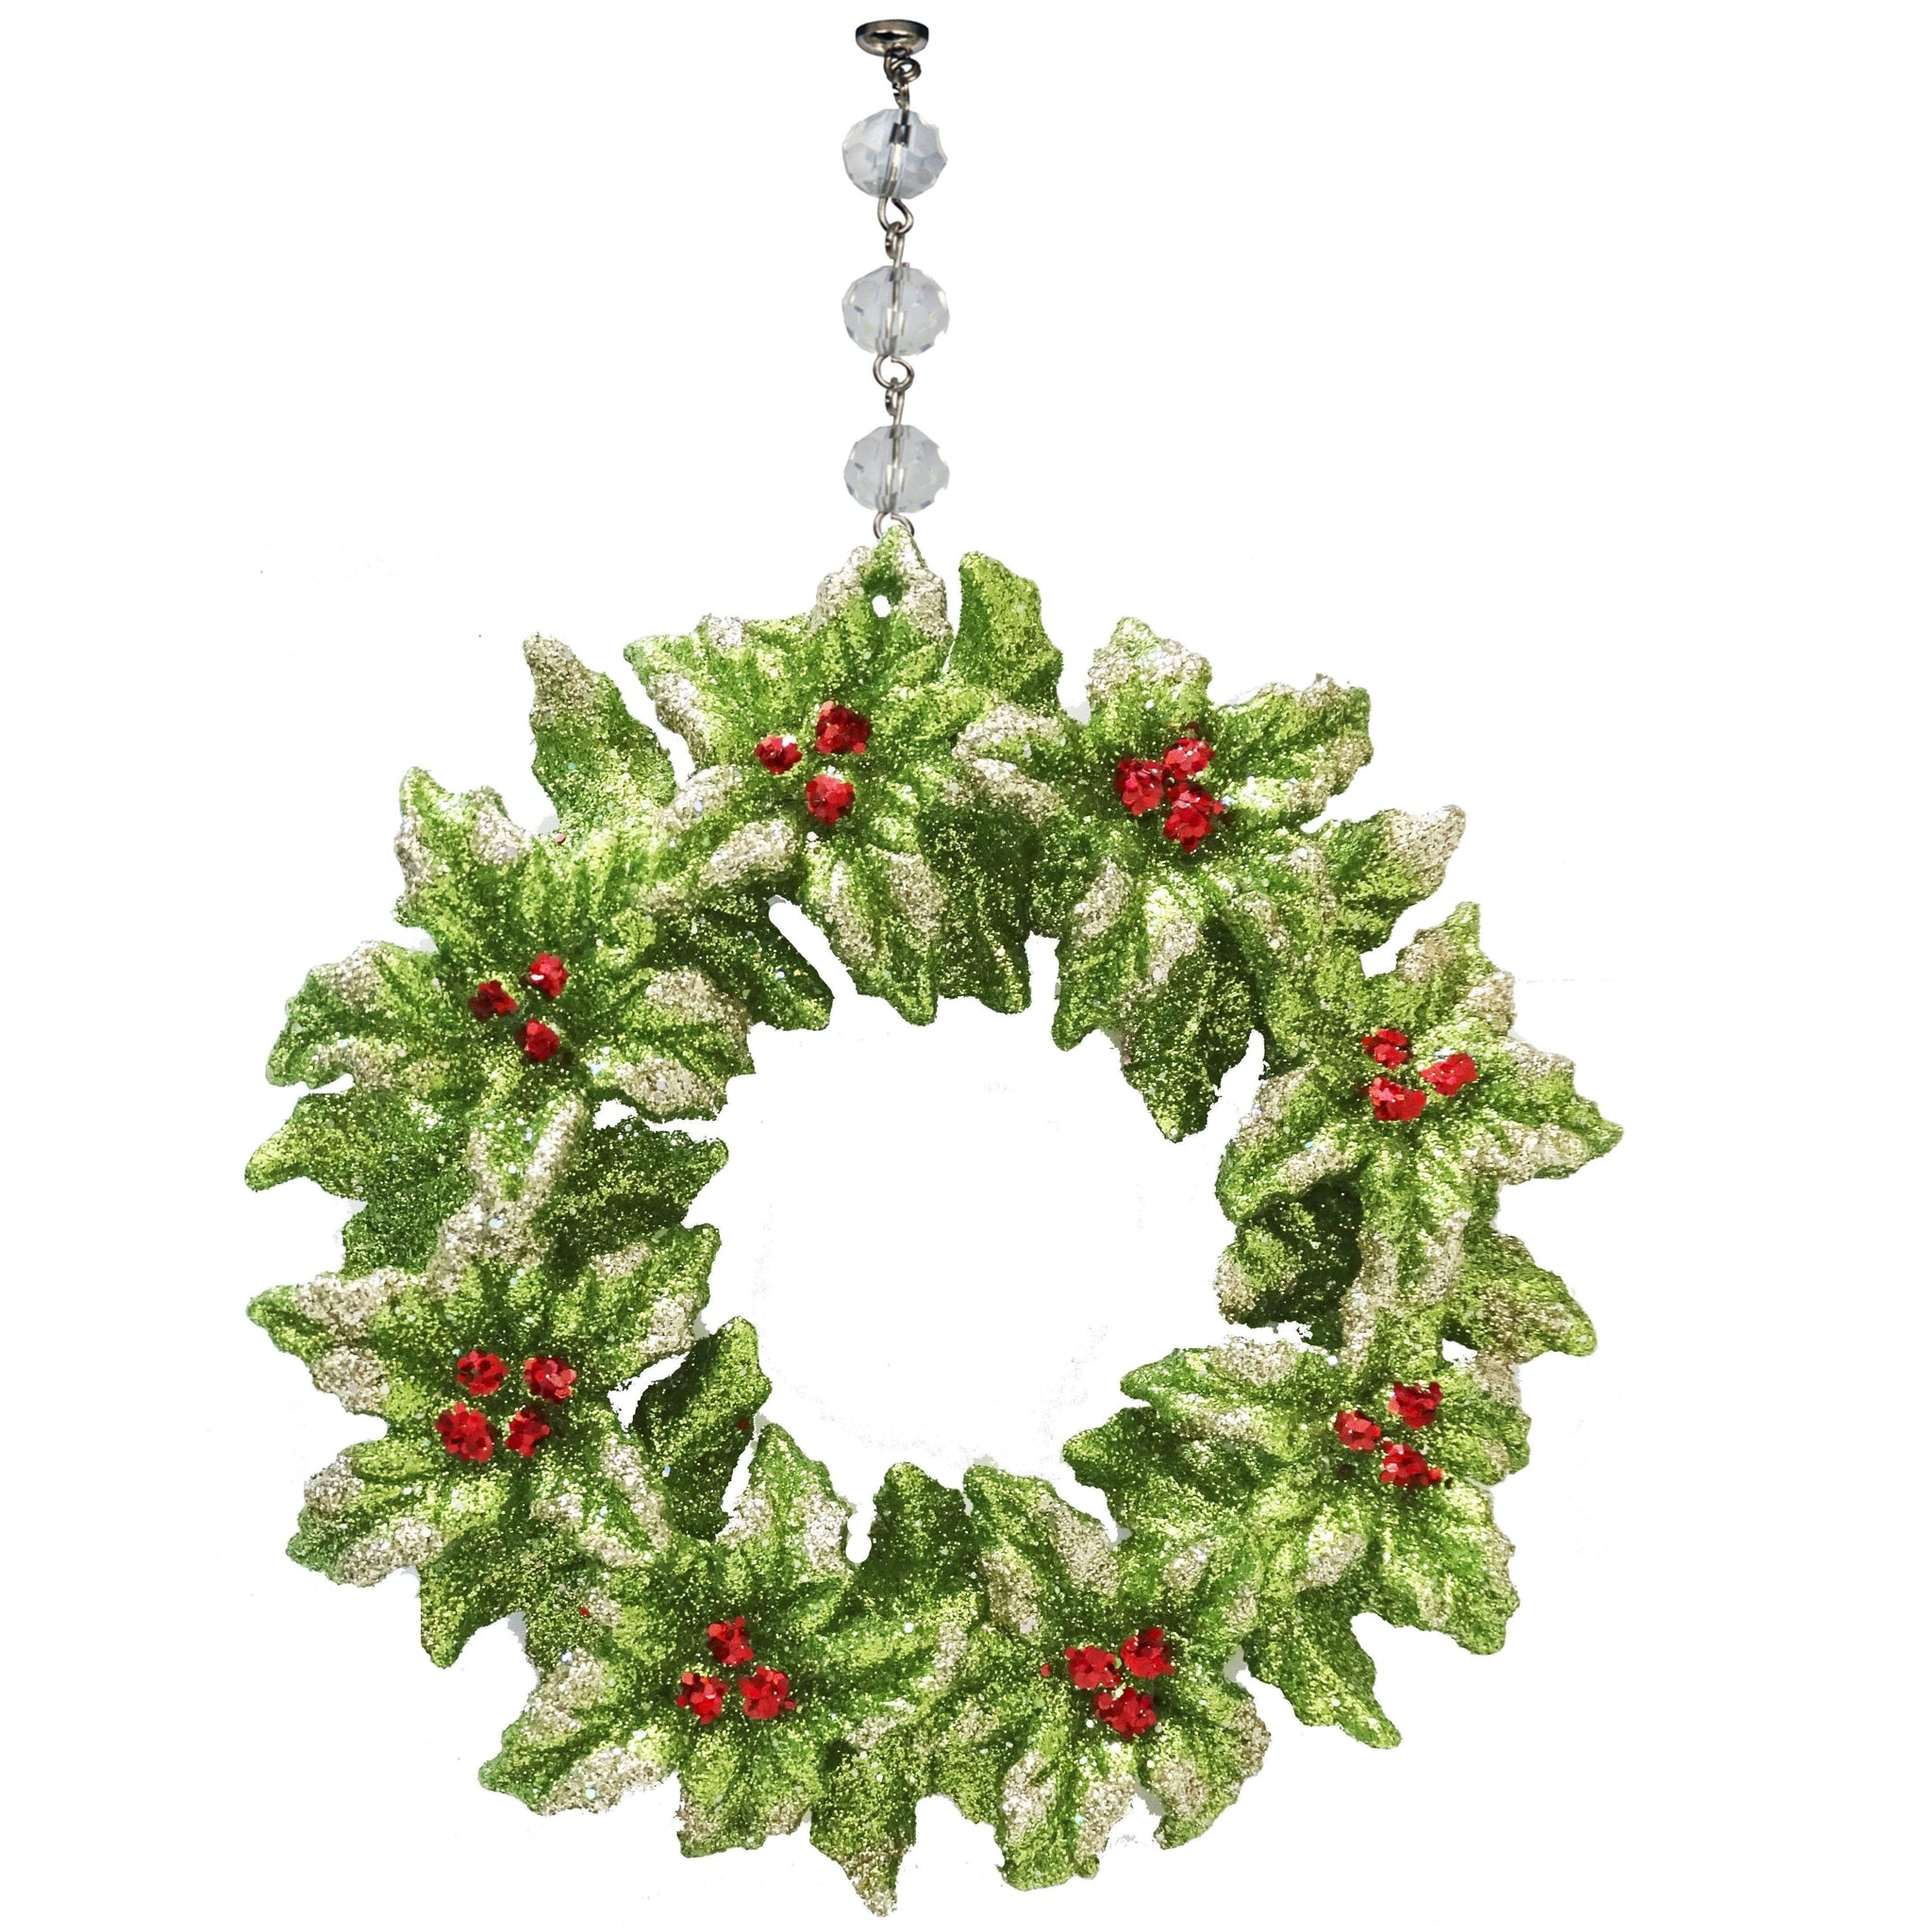 GLITTER RED/GREEN MISTLETOE WREATH ORNAMENT (Set/3)  MAGNETIC ORNAMENT - Magnetic Chandelier Accessory TrimKit®